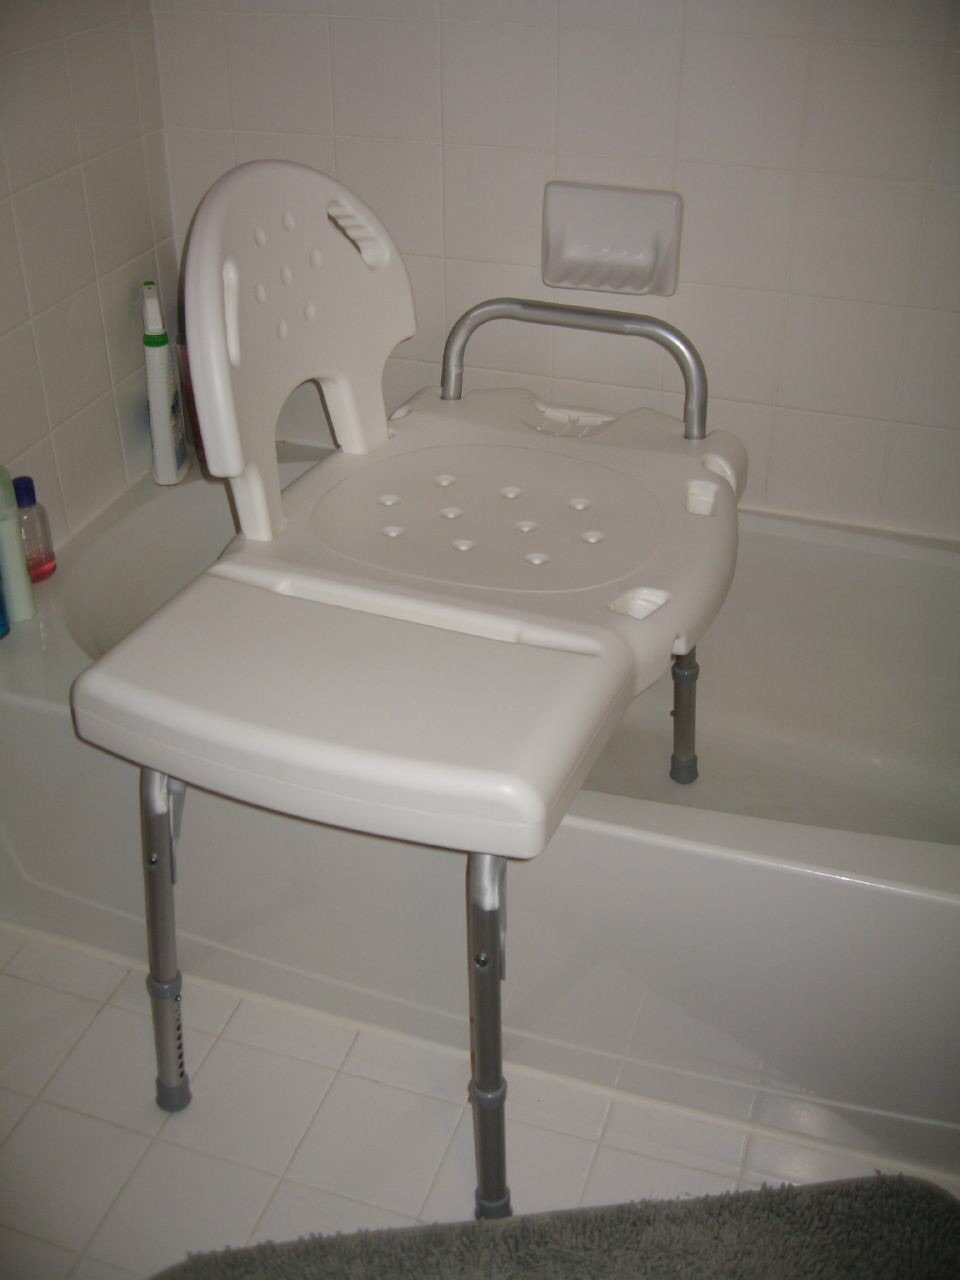 Transfer bench wikipedia Transfer bath bench